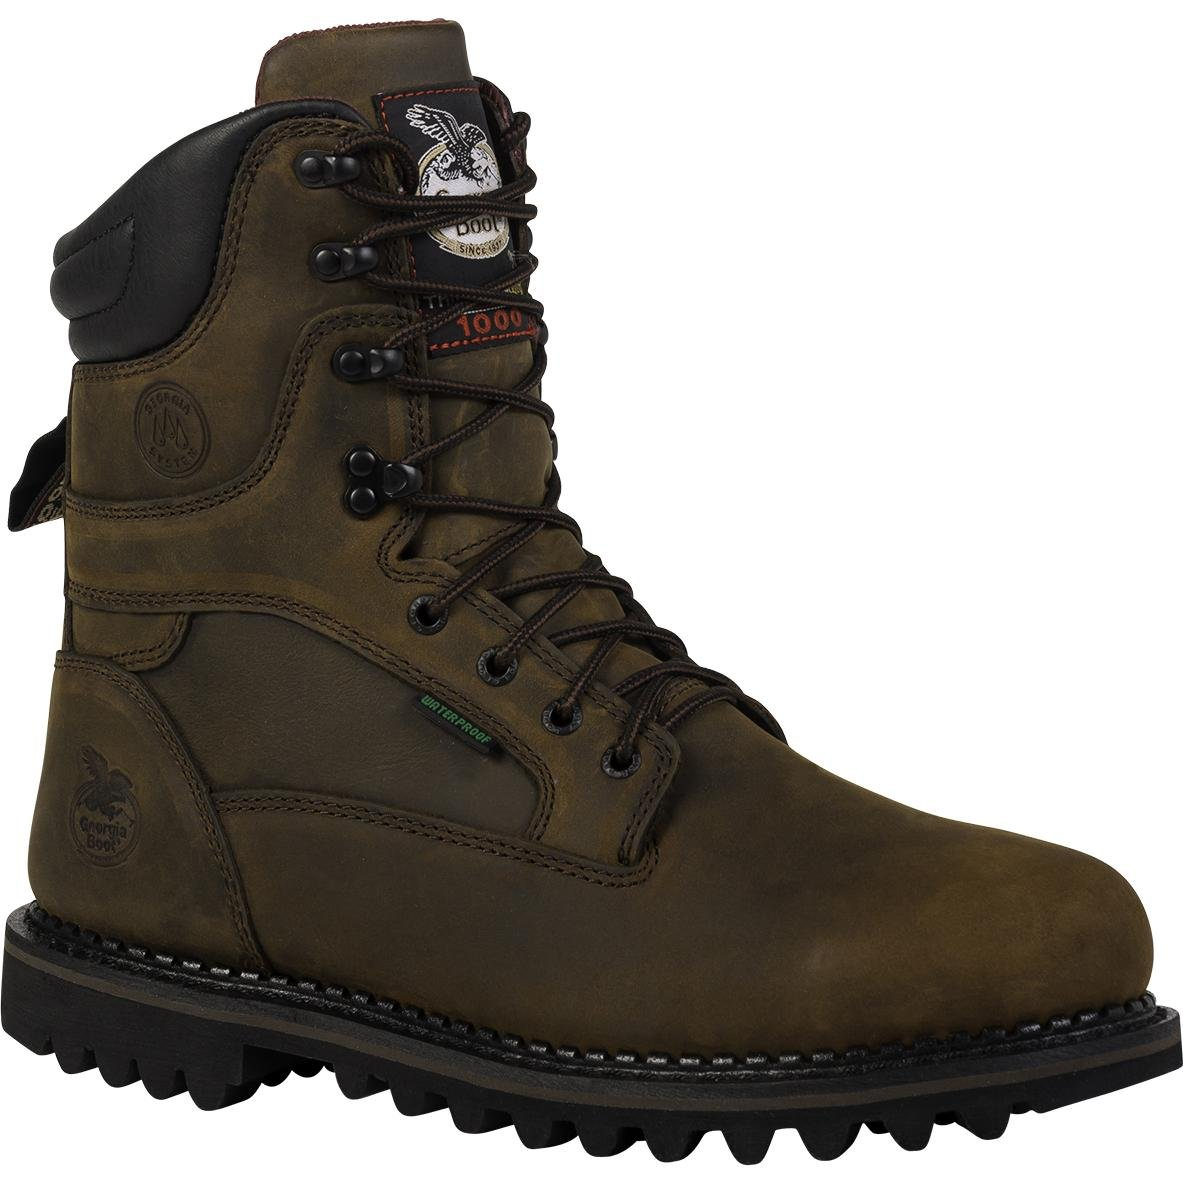 Georgia Insulated Steel Toe Work Boots®G-8362 (M8)